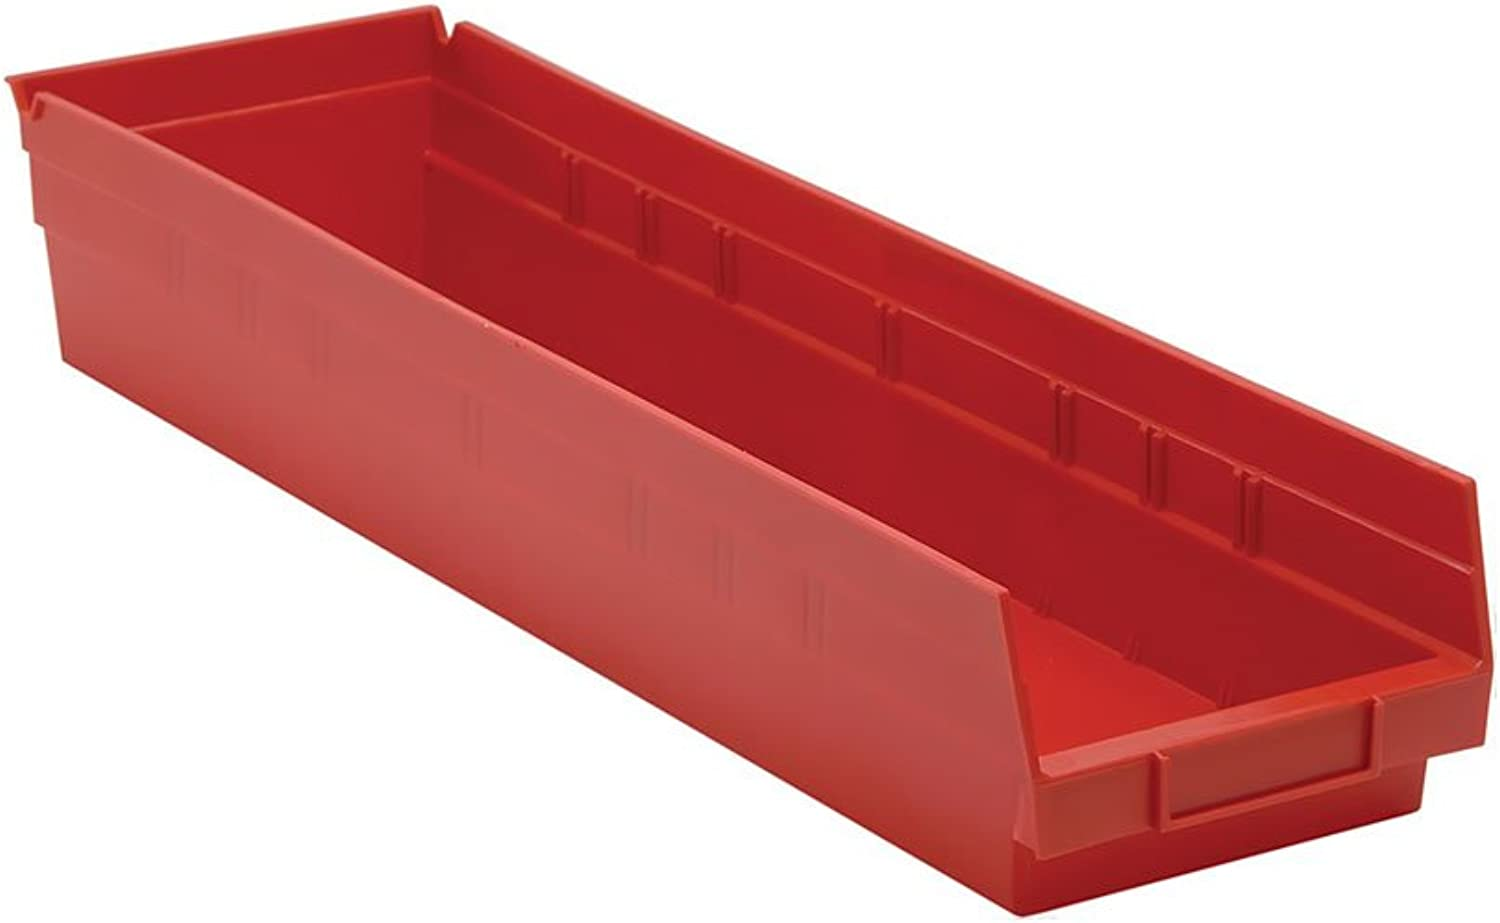 Quantum Storage Systems Economy Shelf Bin 23-5 8 Lx 6-5 8 Wx 4 H Red Pack Of 8